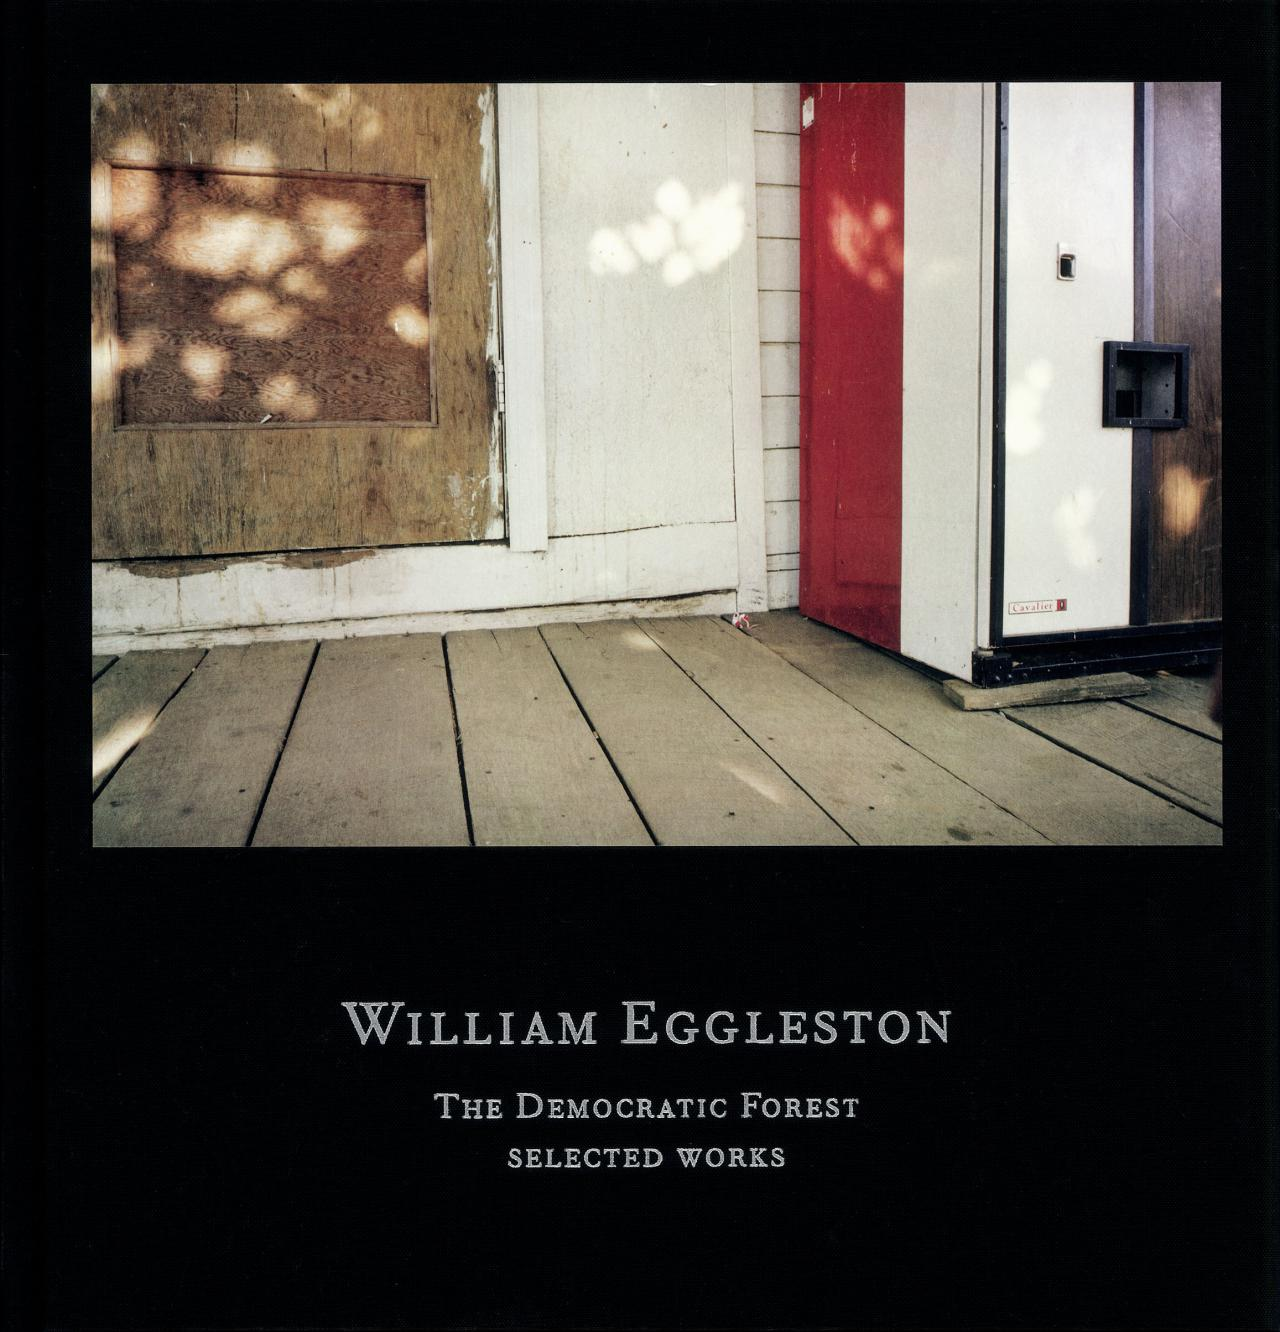 William Eggleston: The Democratic Forest. Selected Works